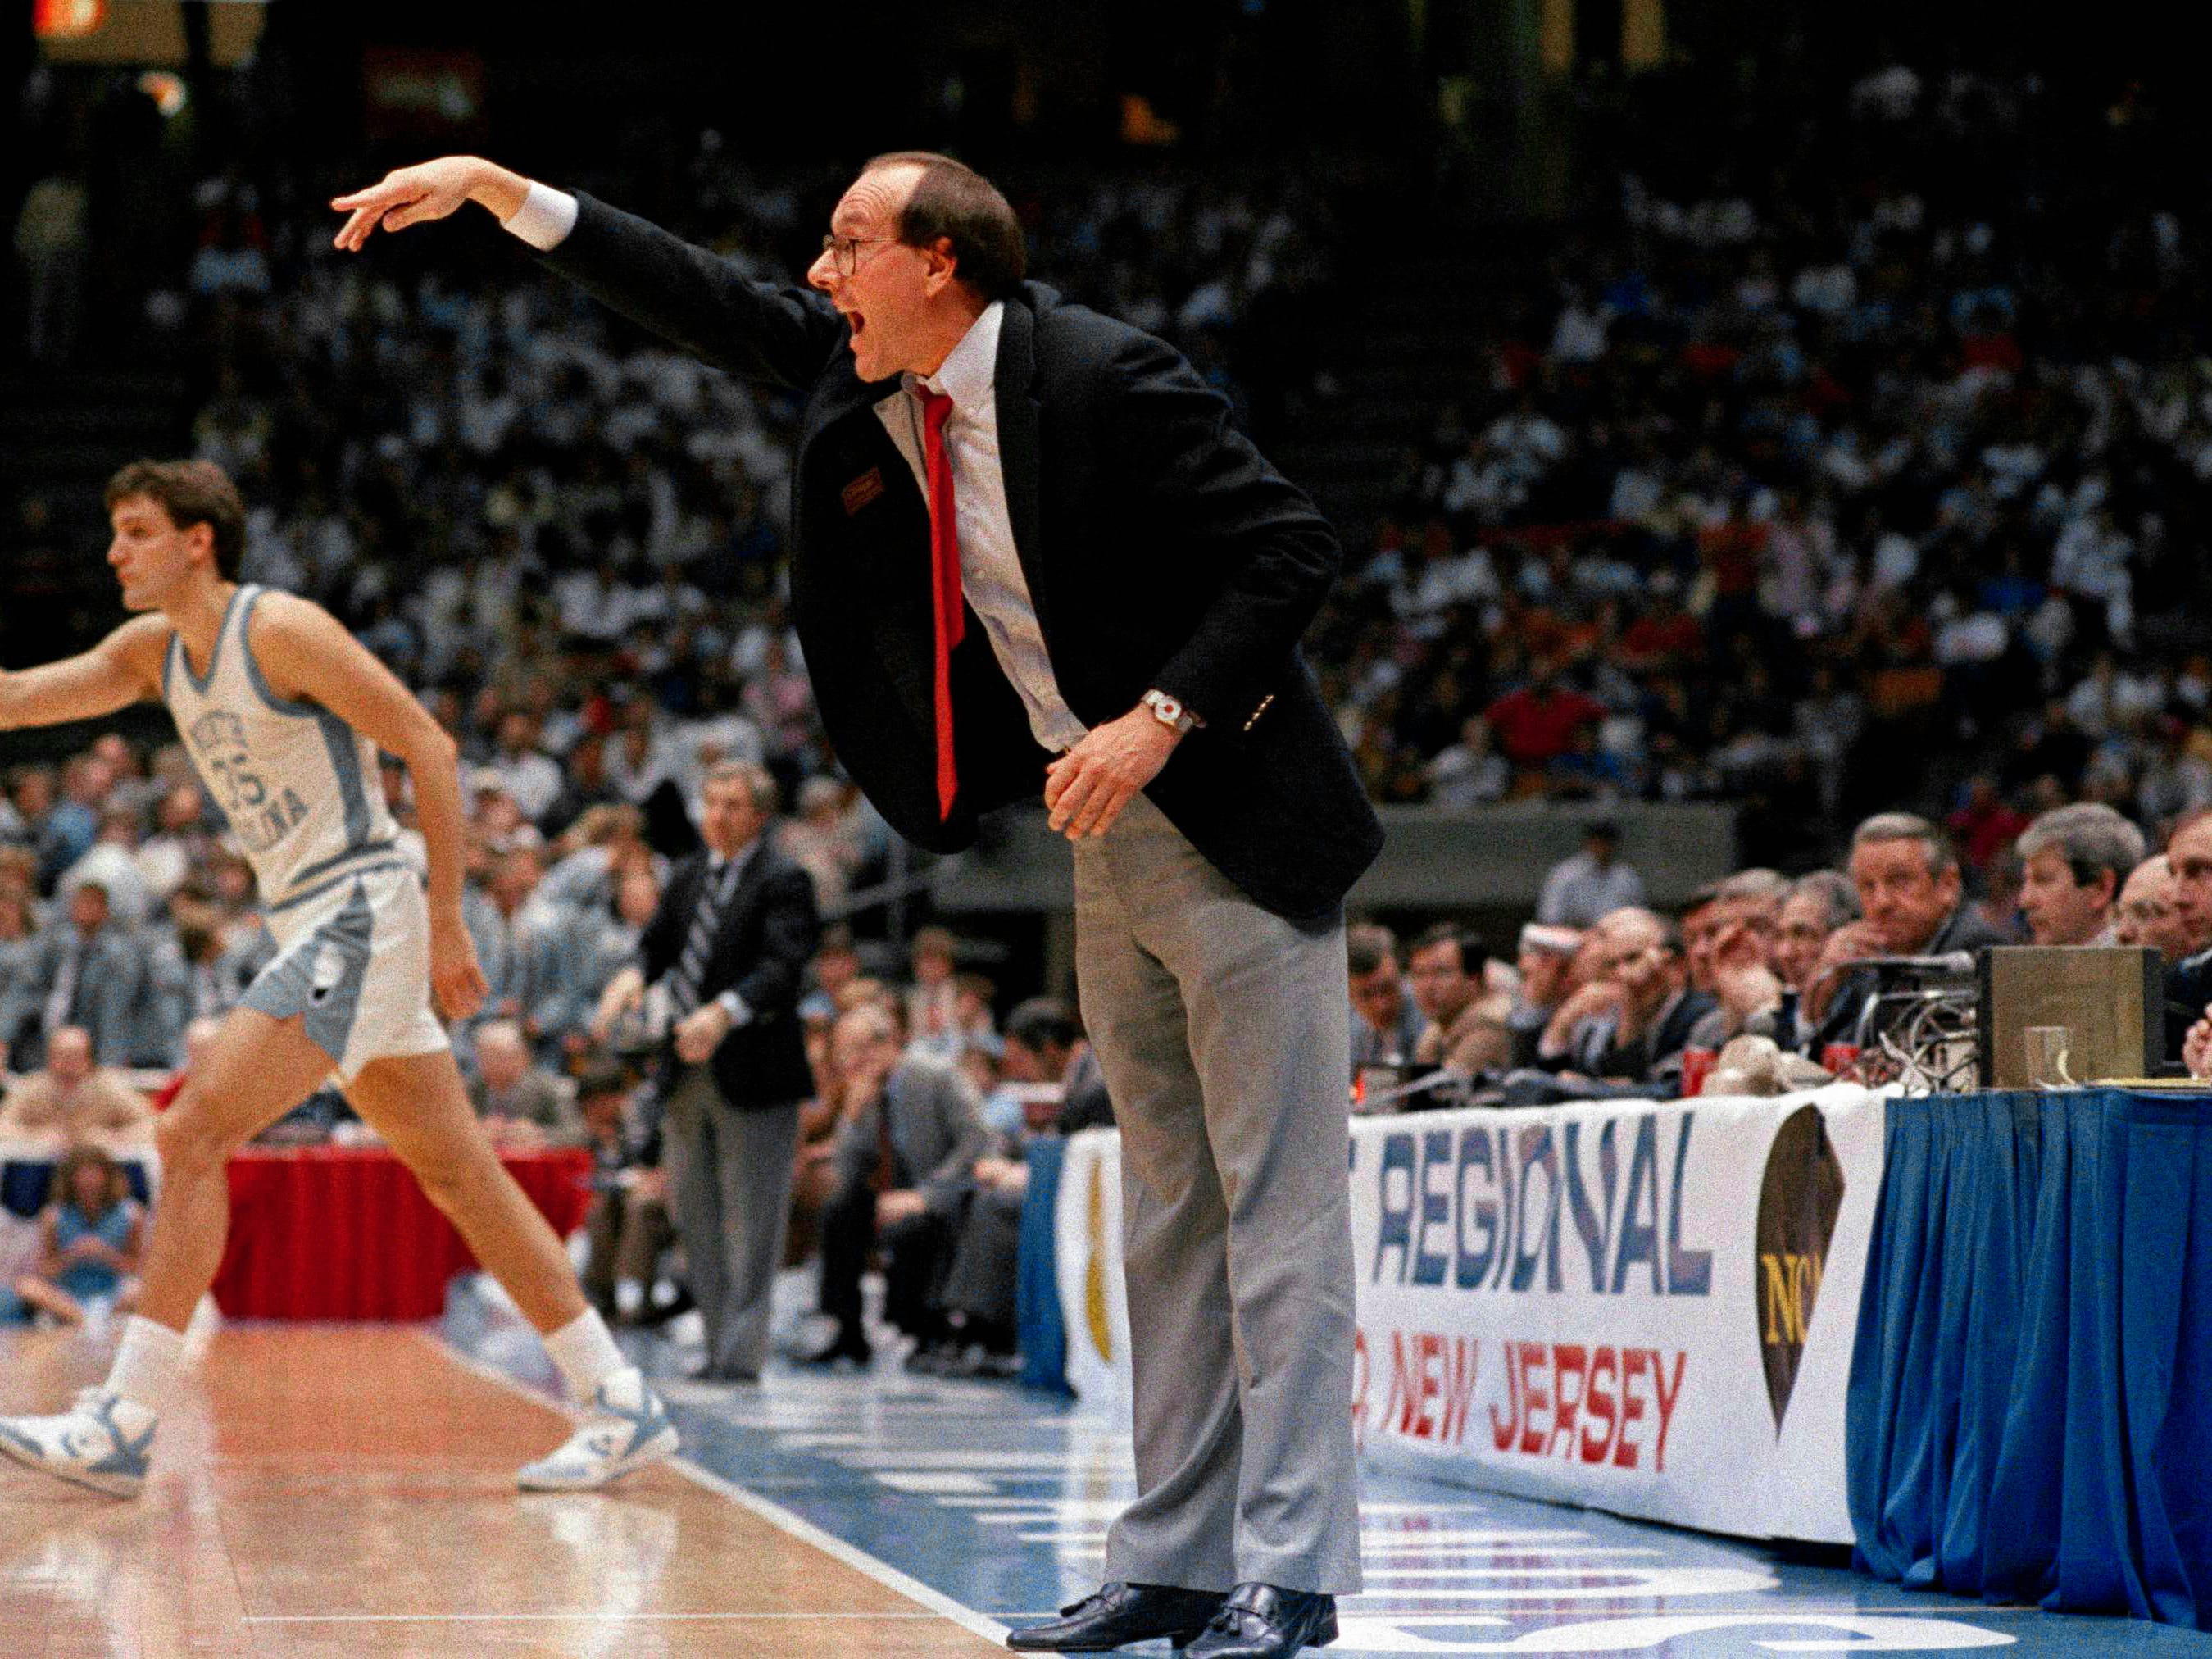 1987: Syracuse coach Jim Boeheim directs the action from the sideline as North Carolina's Dave Popson head toward the action in the East Regional Final in East Rutherford, New Jersey  Saturday, March 21, 1987. Boeheim and his Orangemen beat the Ta Heels 79-75.